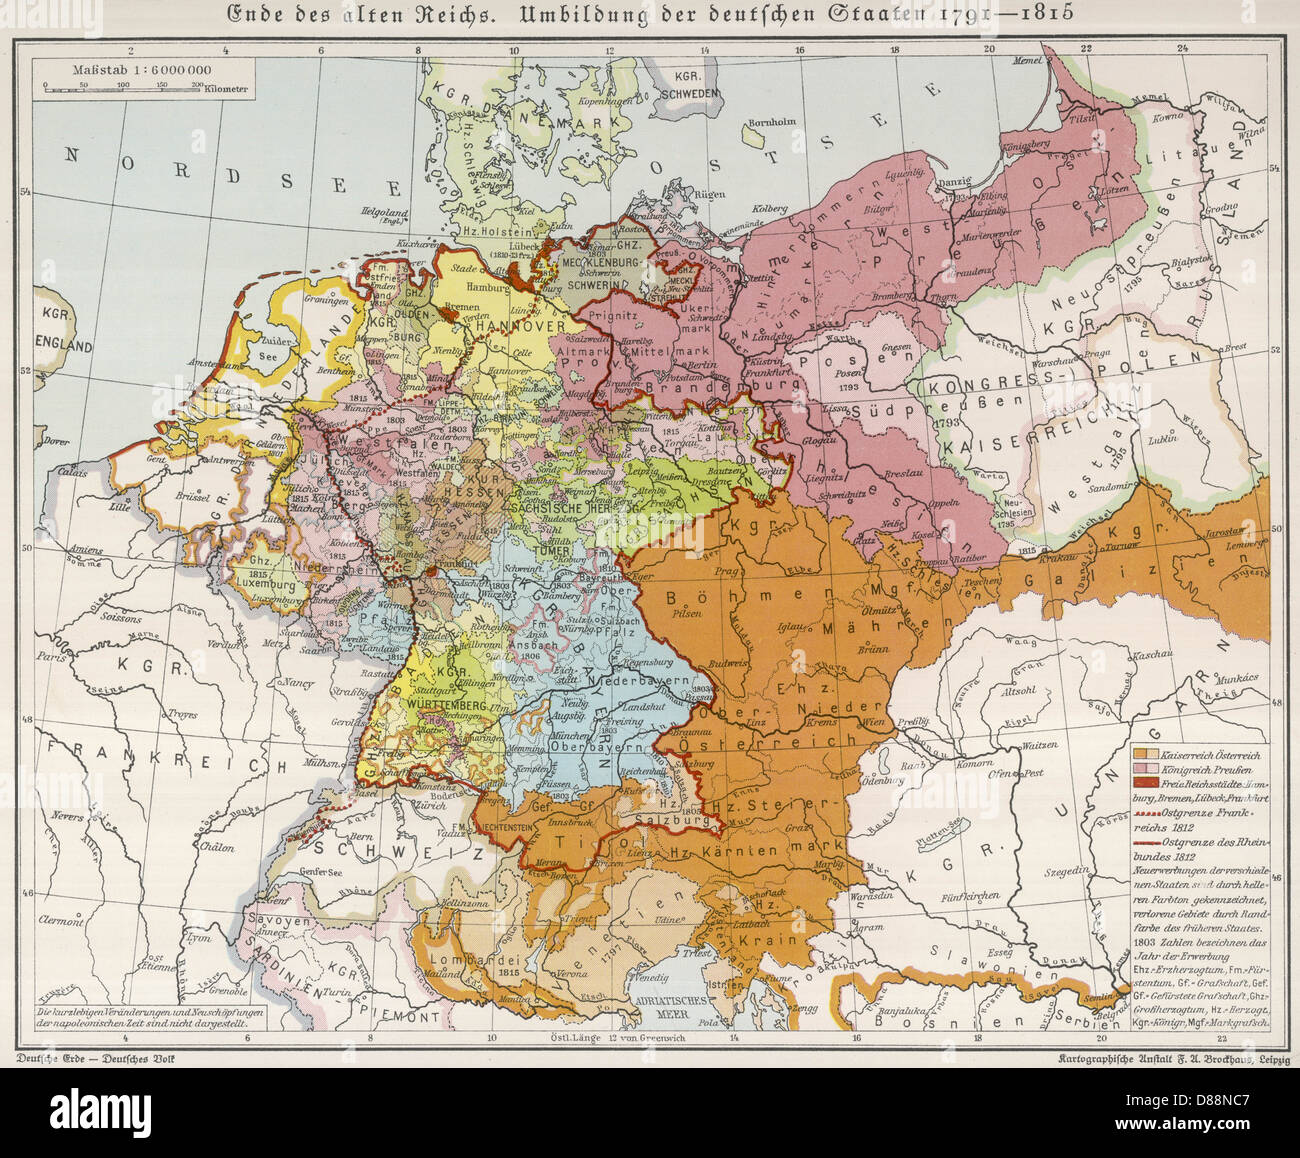 Europe 1815 Map Stock Photos & Europe 1815 Map Stock Images - Alamy